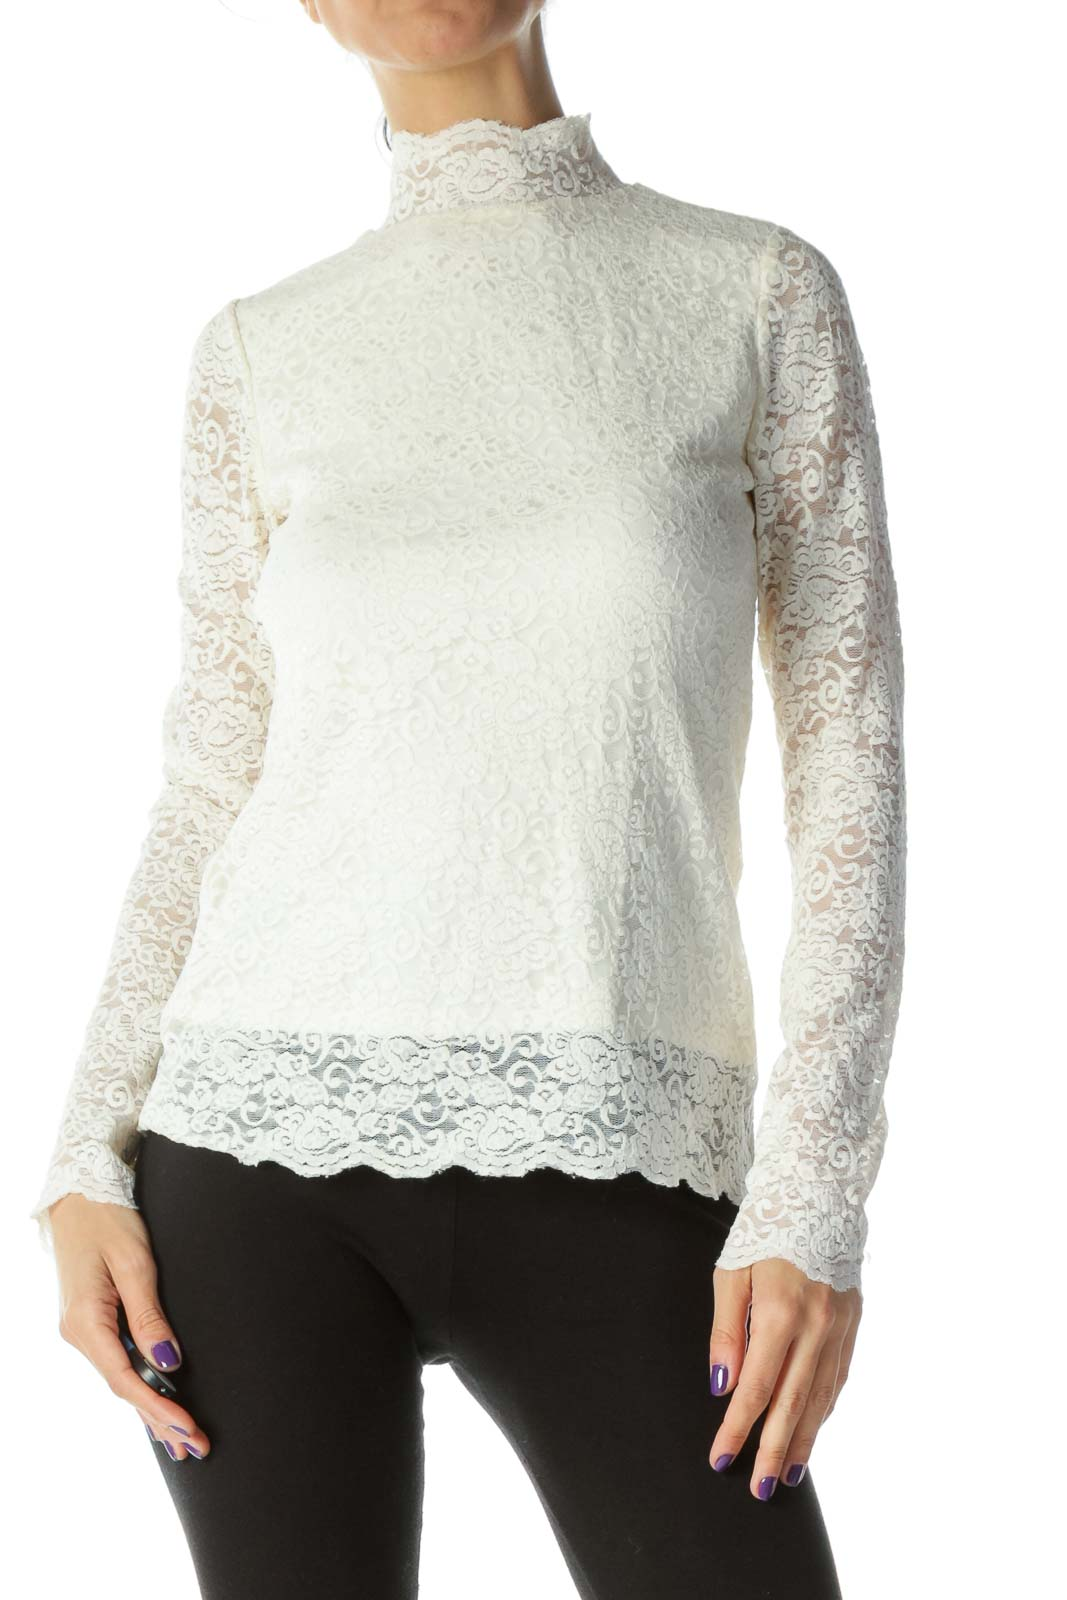 White Mock Neck Lace Long Sleeve Top